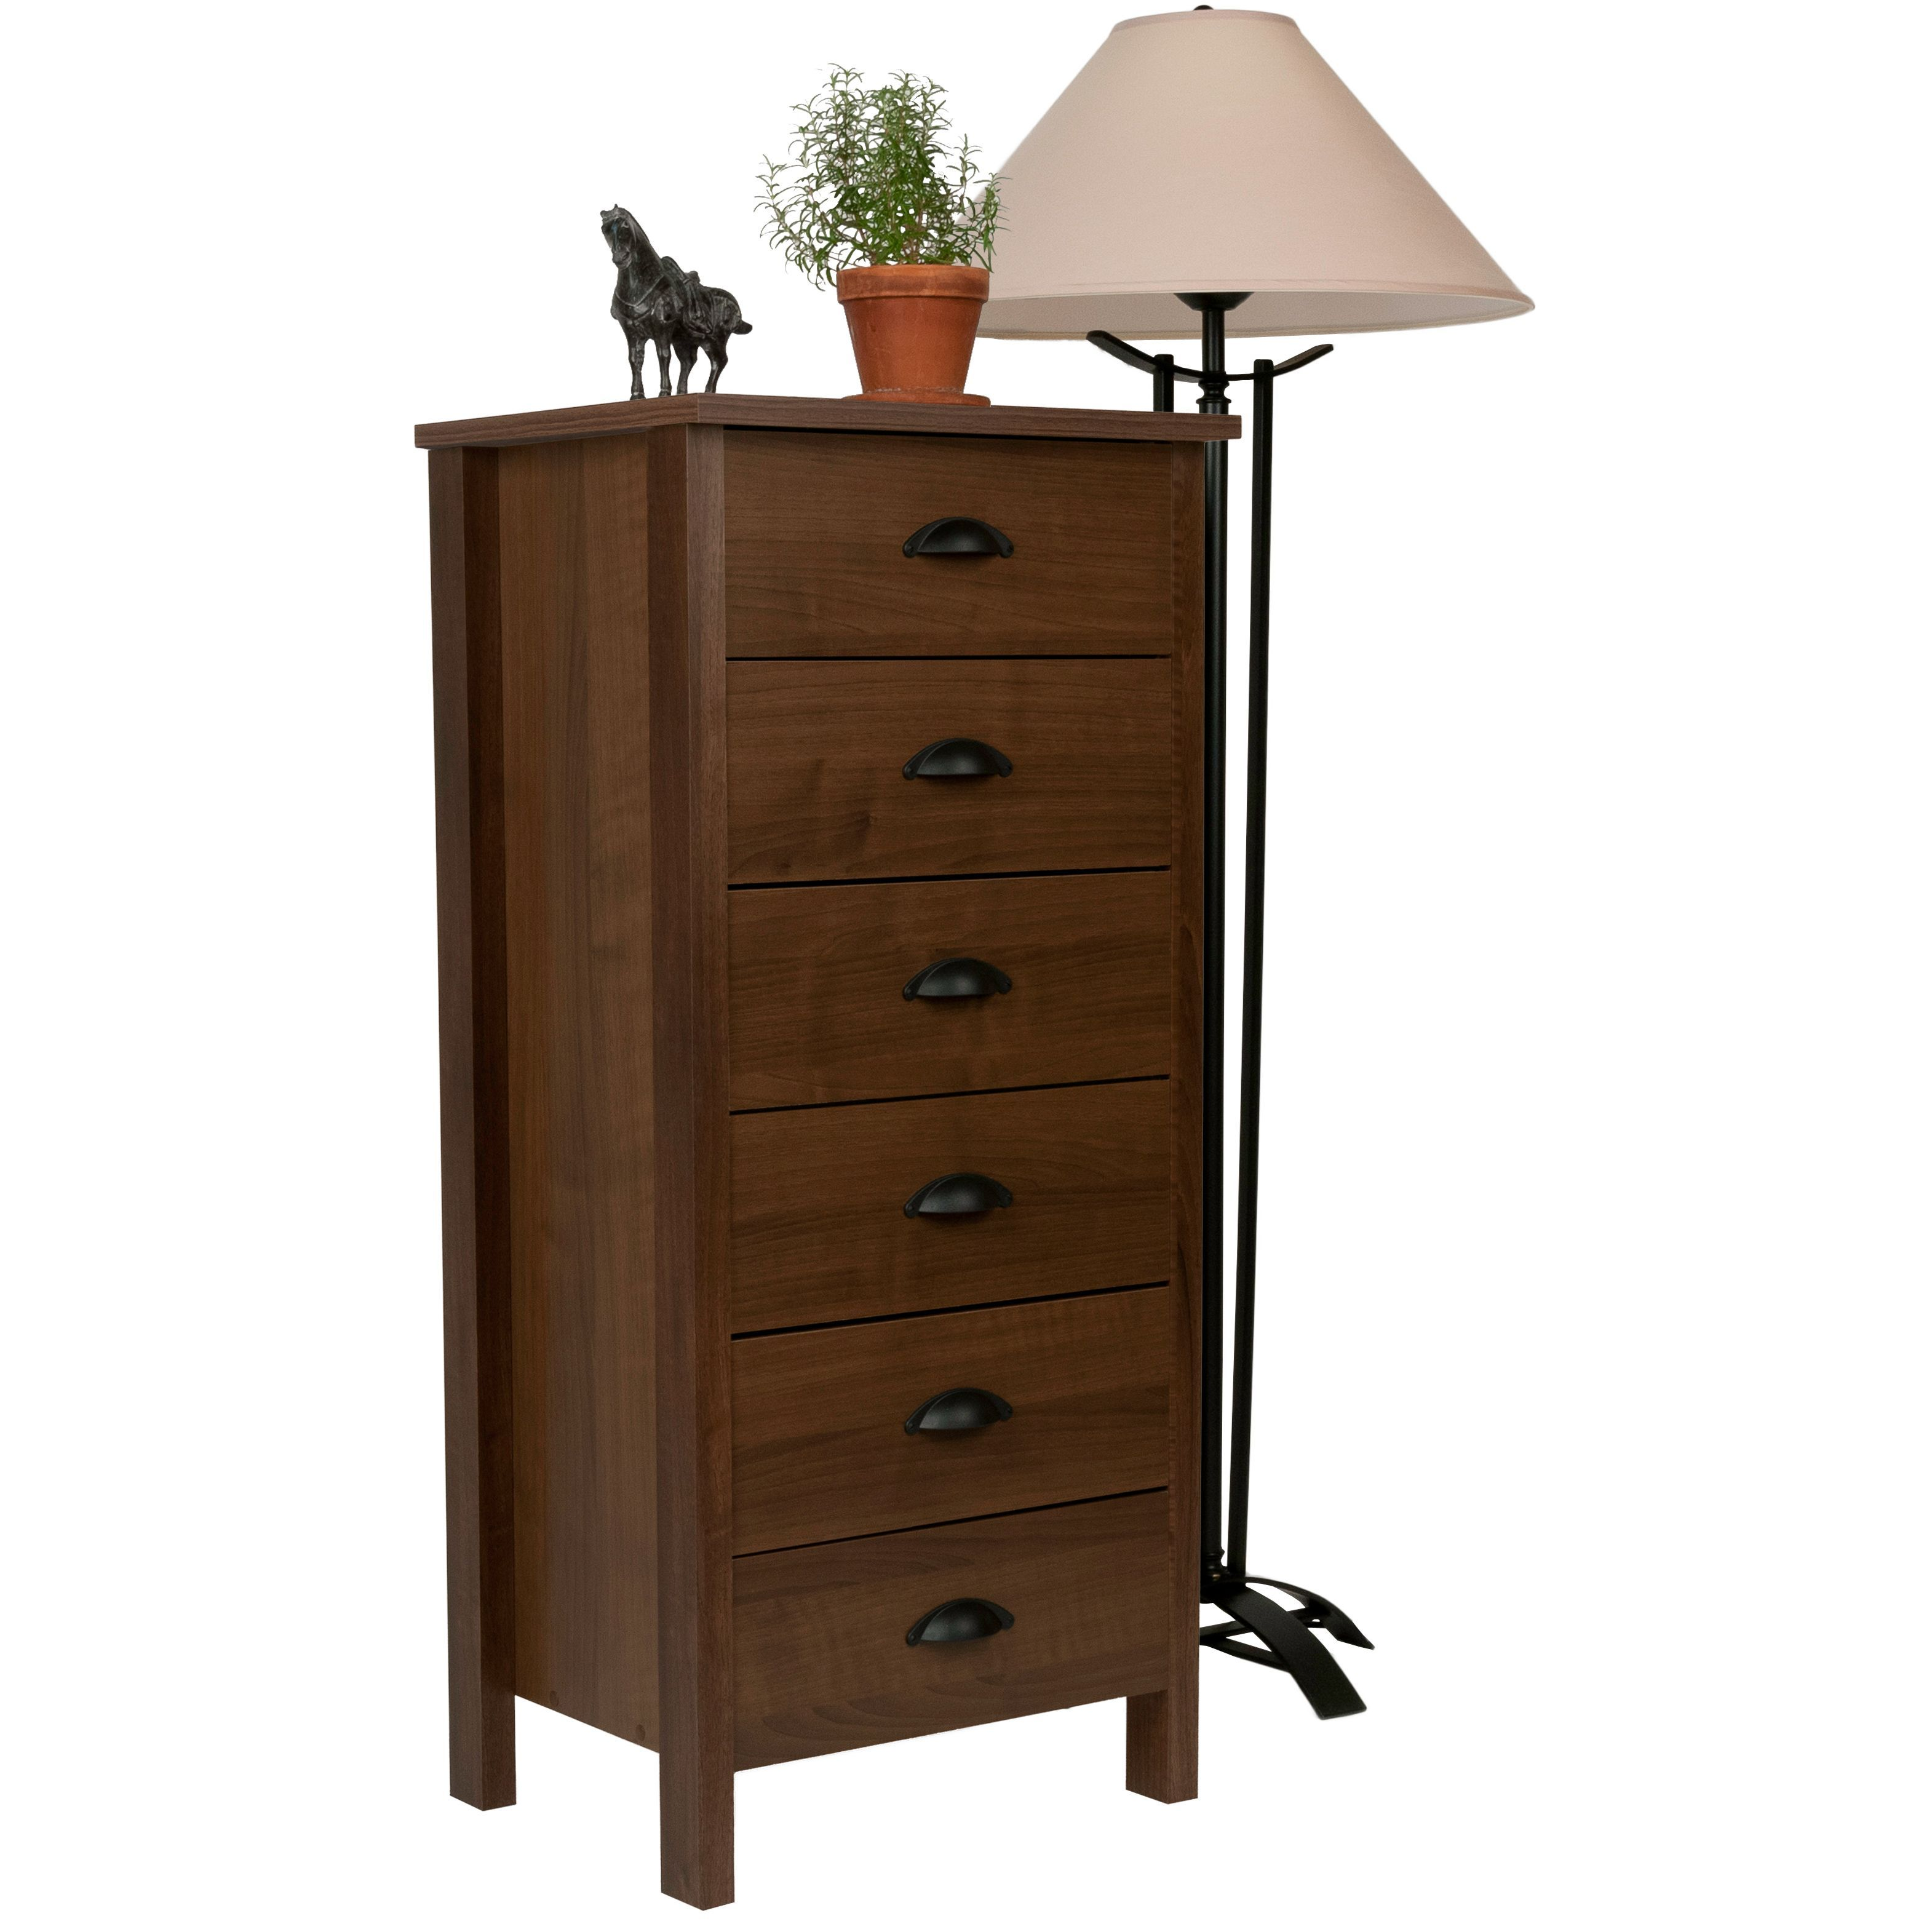 Store Your Socks And Shirts In This Classic Six Drawer Dresser From Venture  Horizon. This Walnut Colored Piece Of Furniture Has A Simple Design And Is  ...